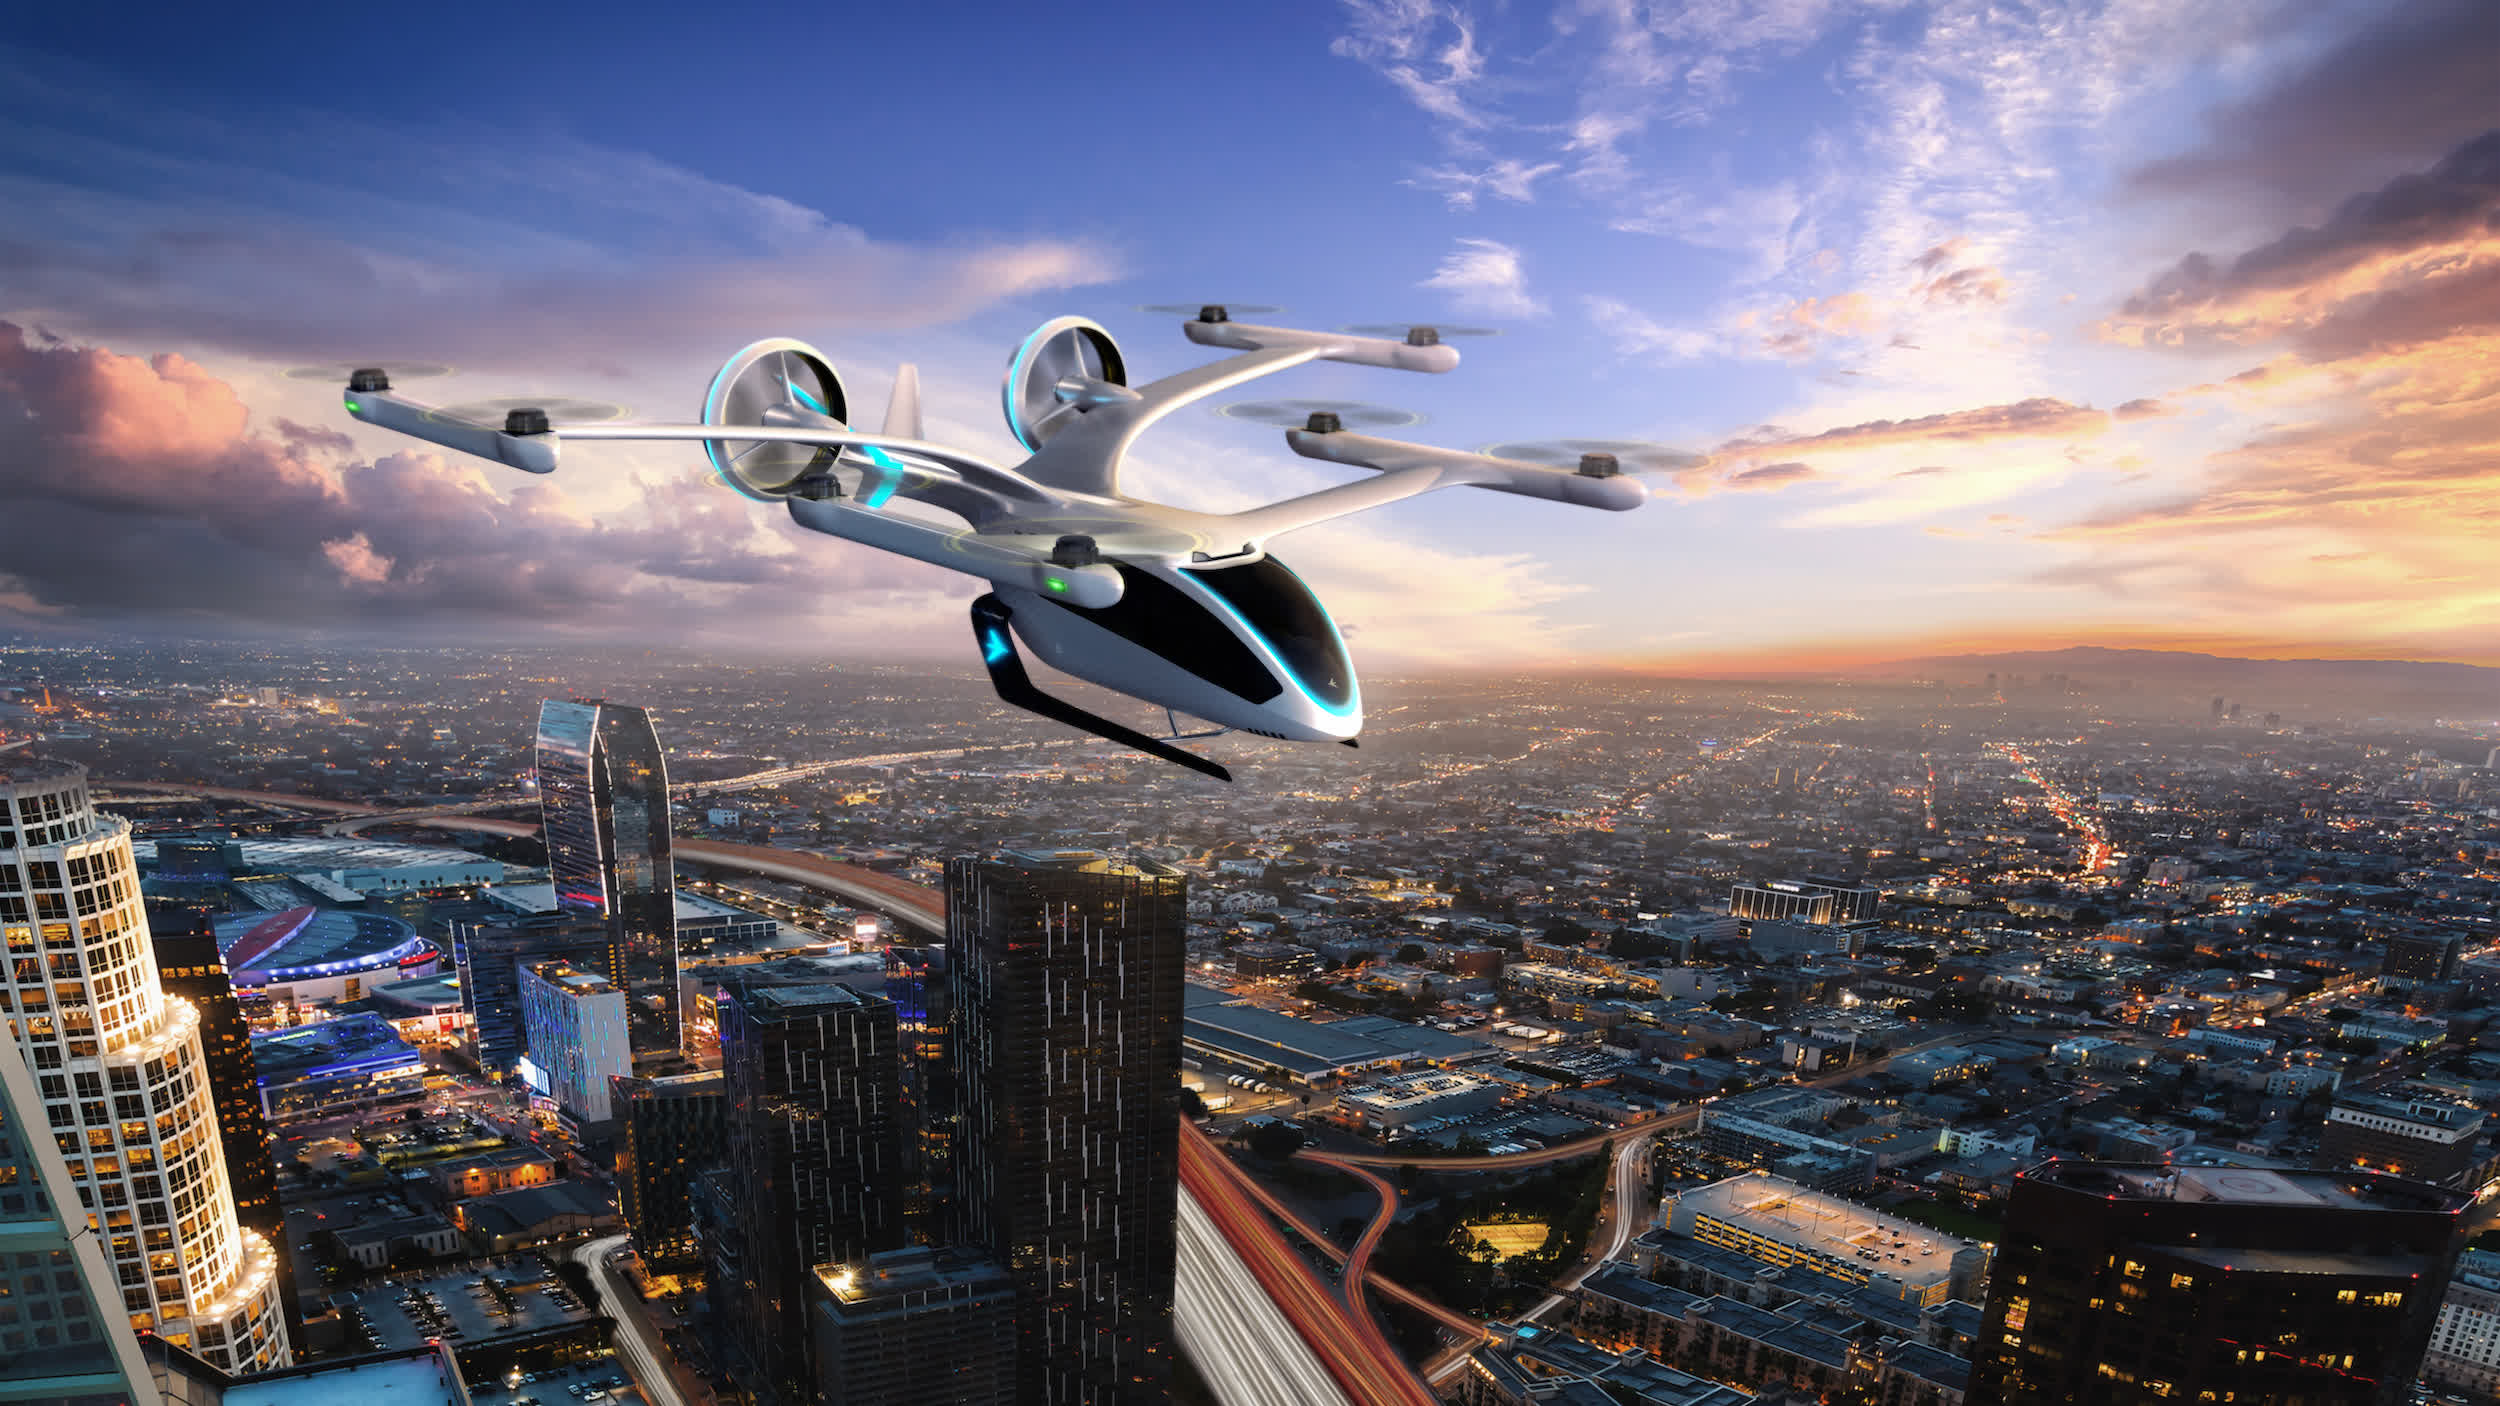 Uber reportedly looking to sell off Elevate, its flying taxi division